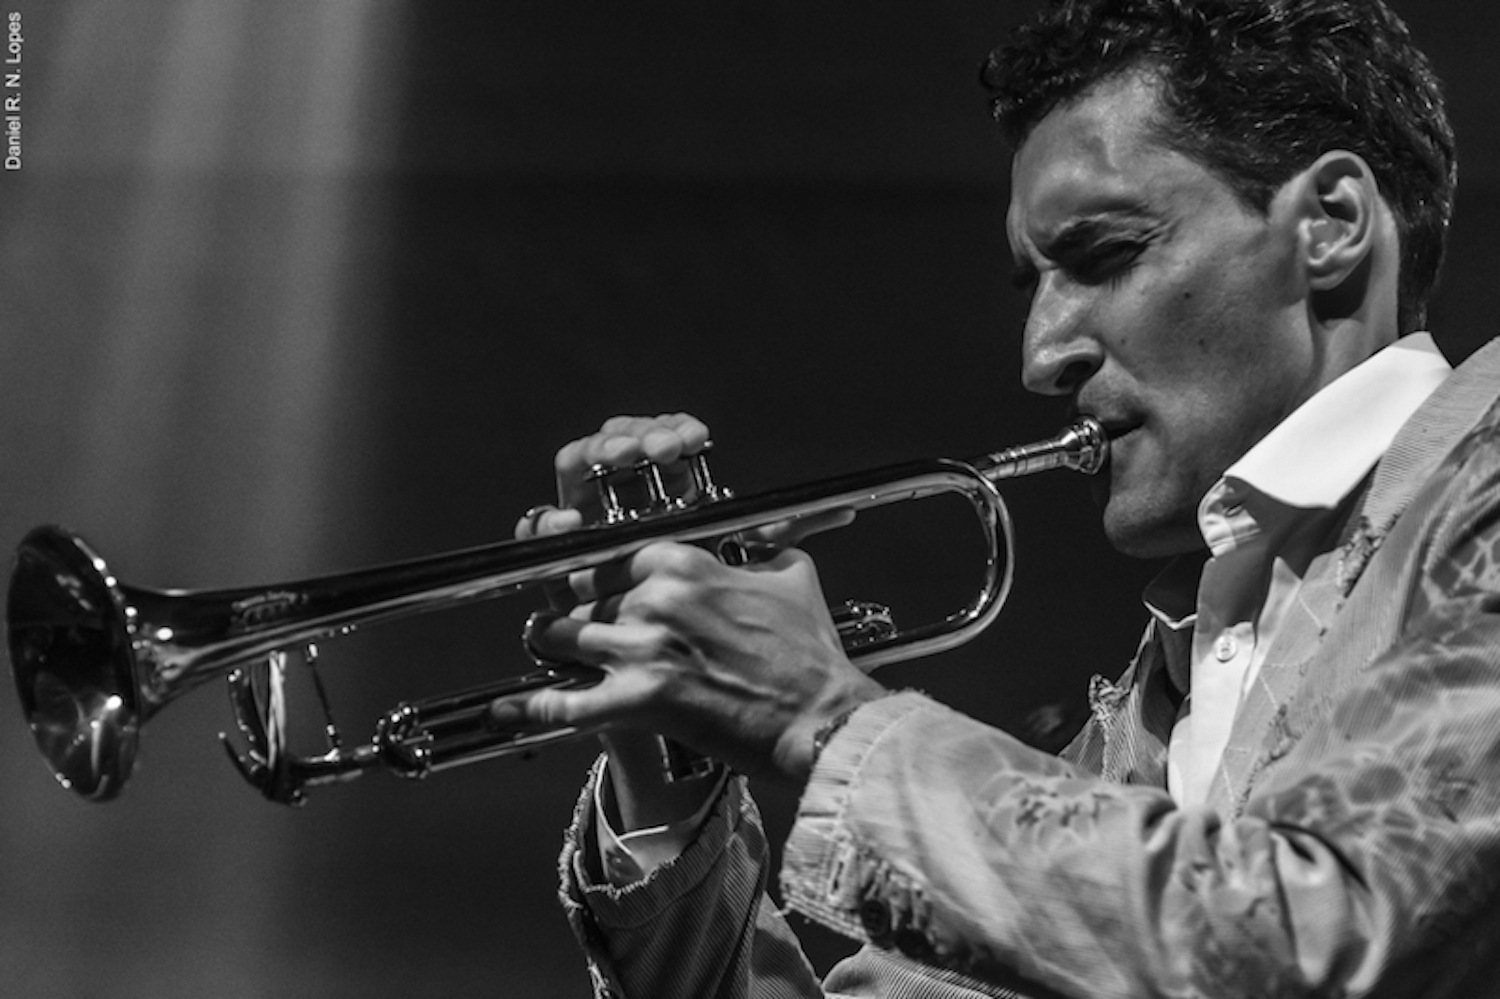 Playing trumpet on tour with Antibalas in Brazil.